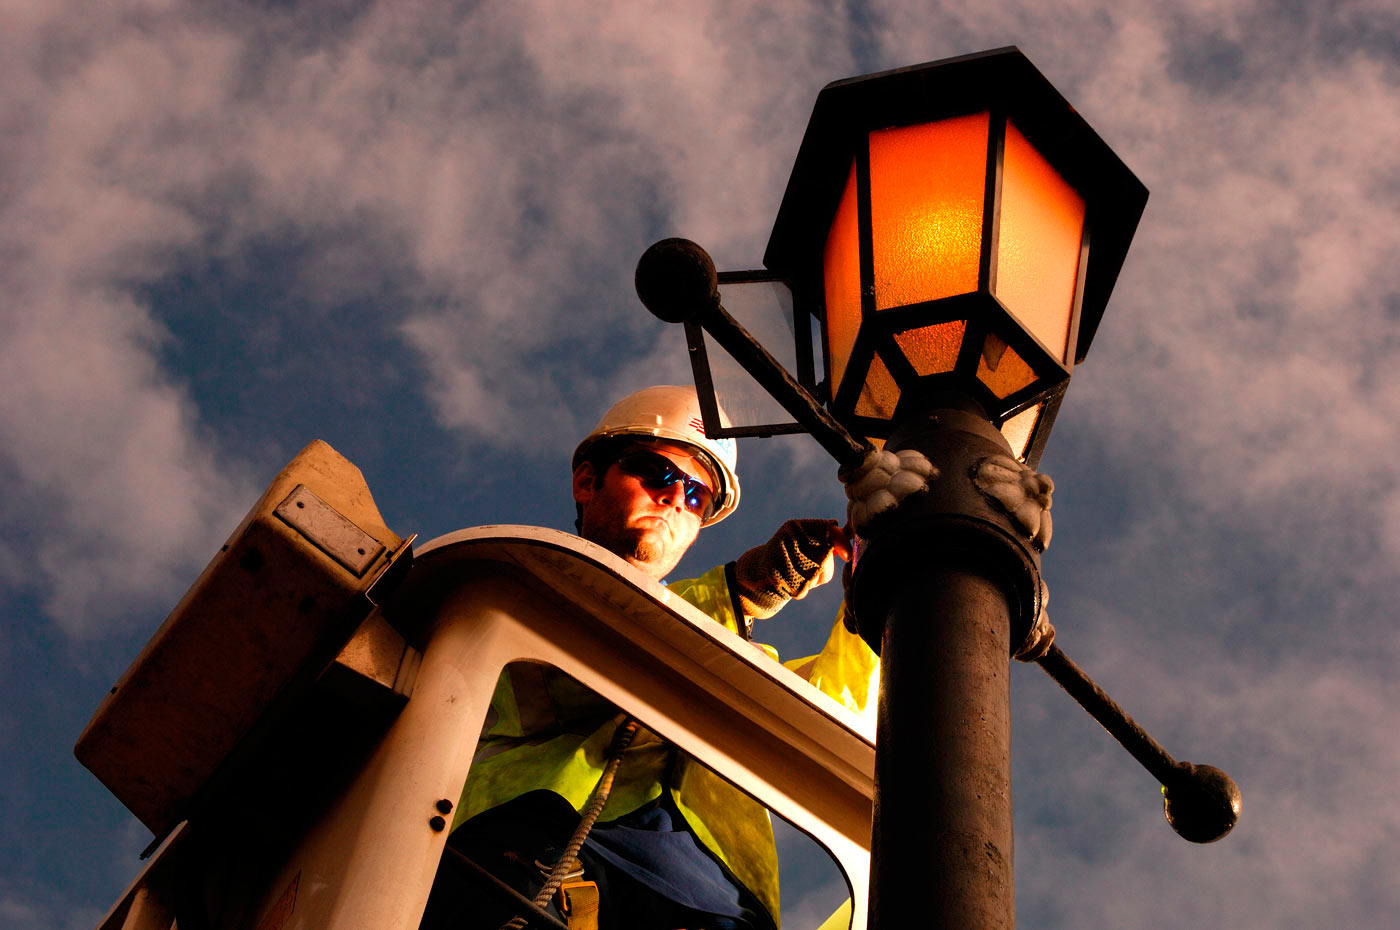 02) borough-of-poole-people-at-work-street-lamp-photography.jpg